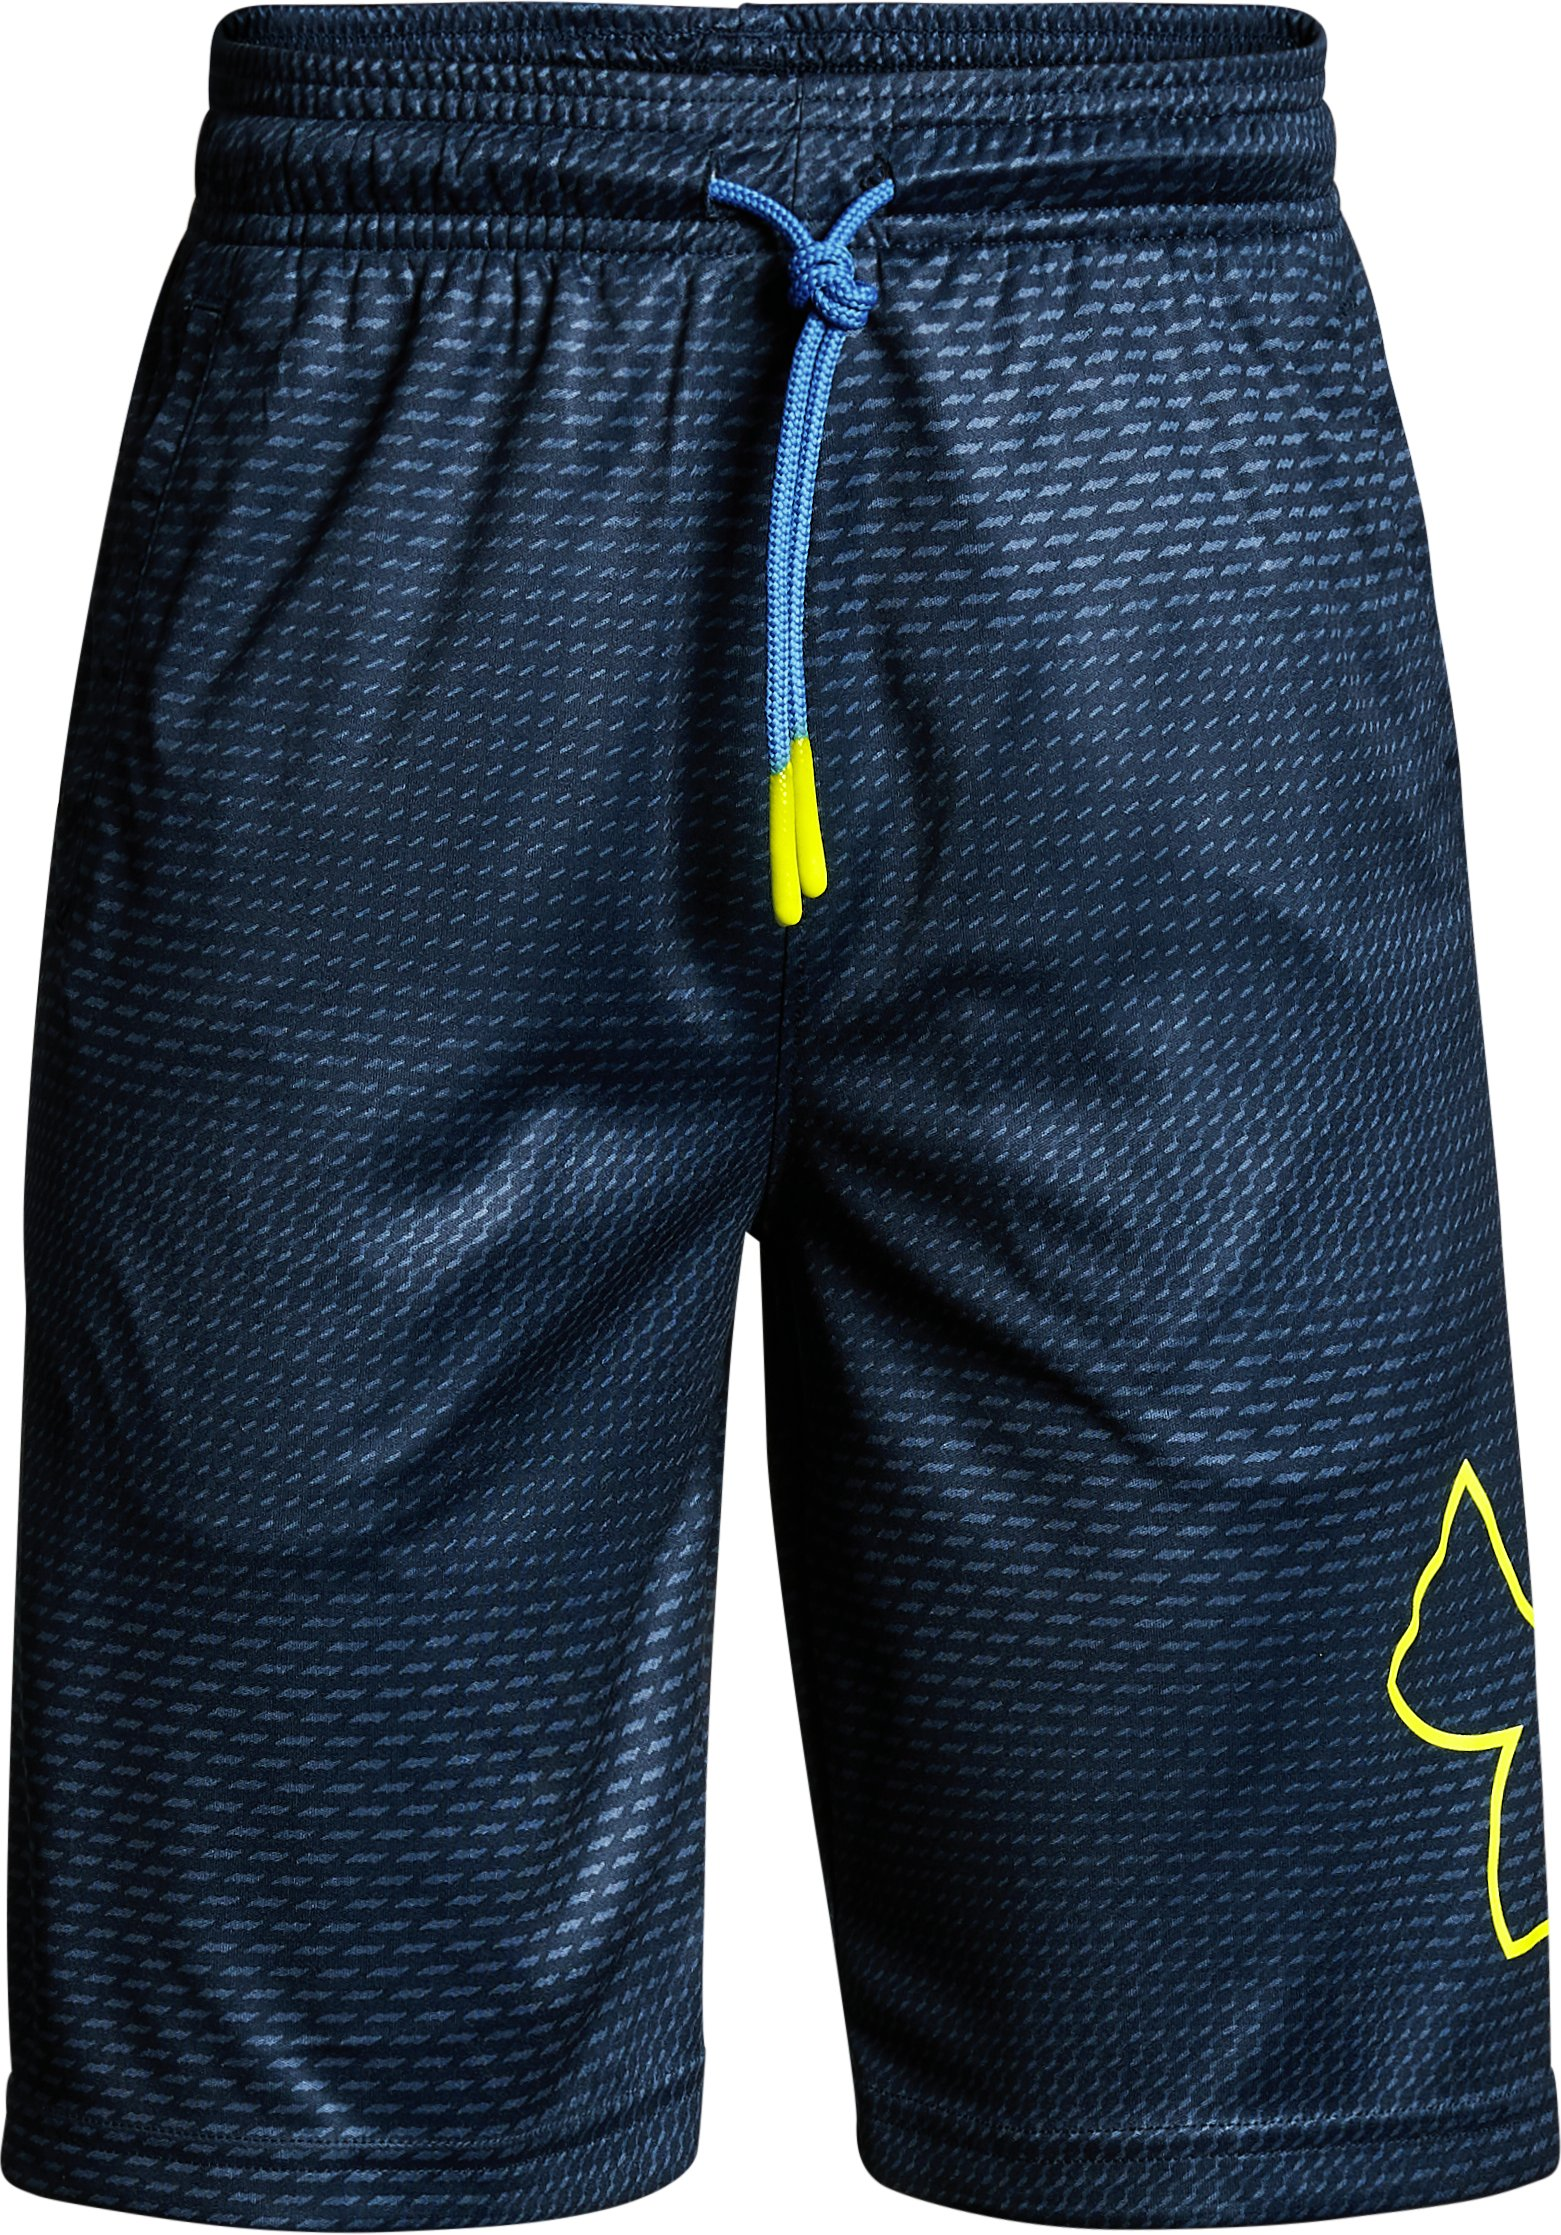 Boys' UA Renegade Printed Shorts, Academy